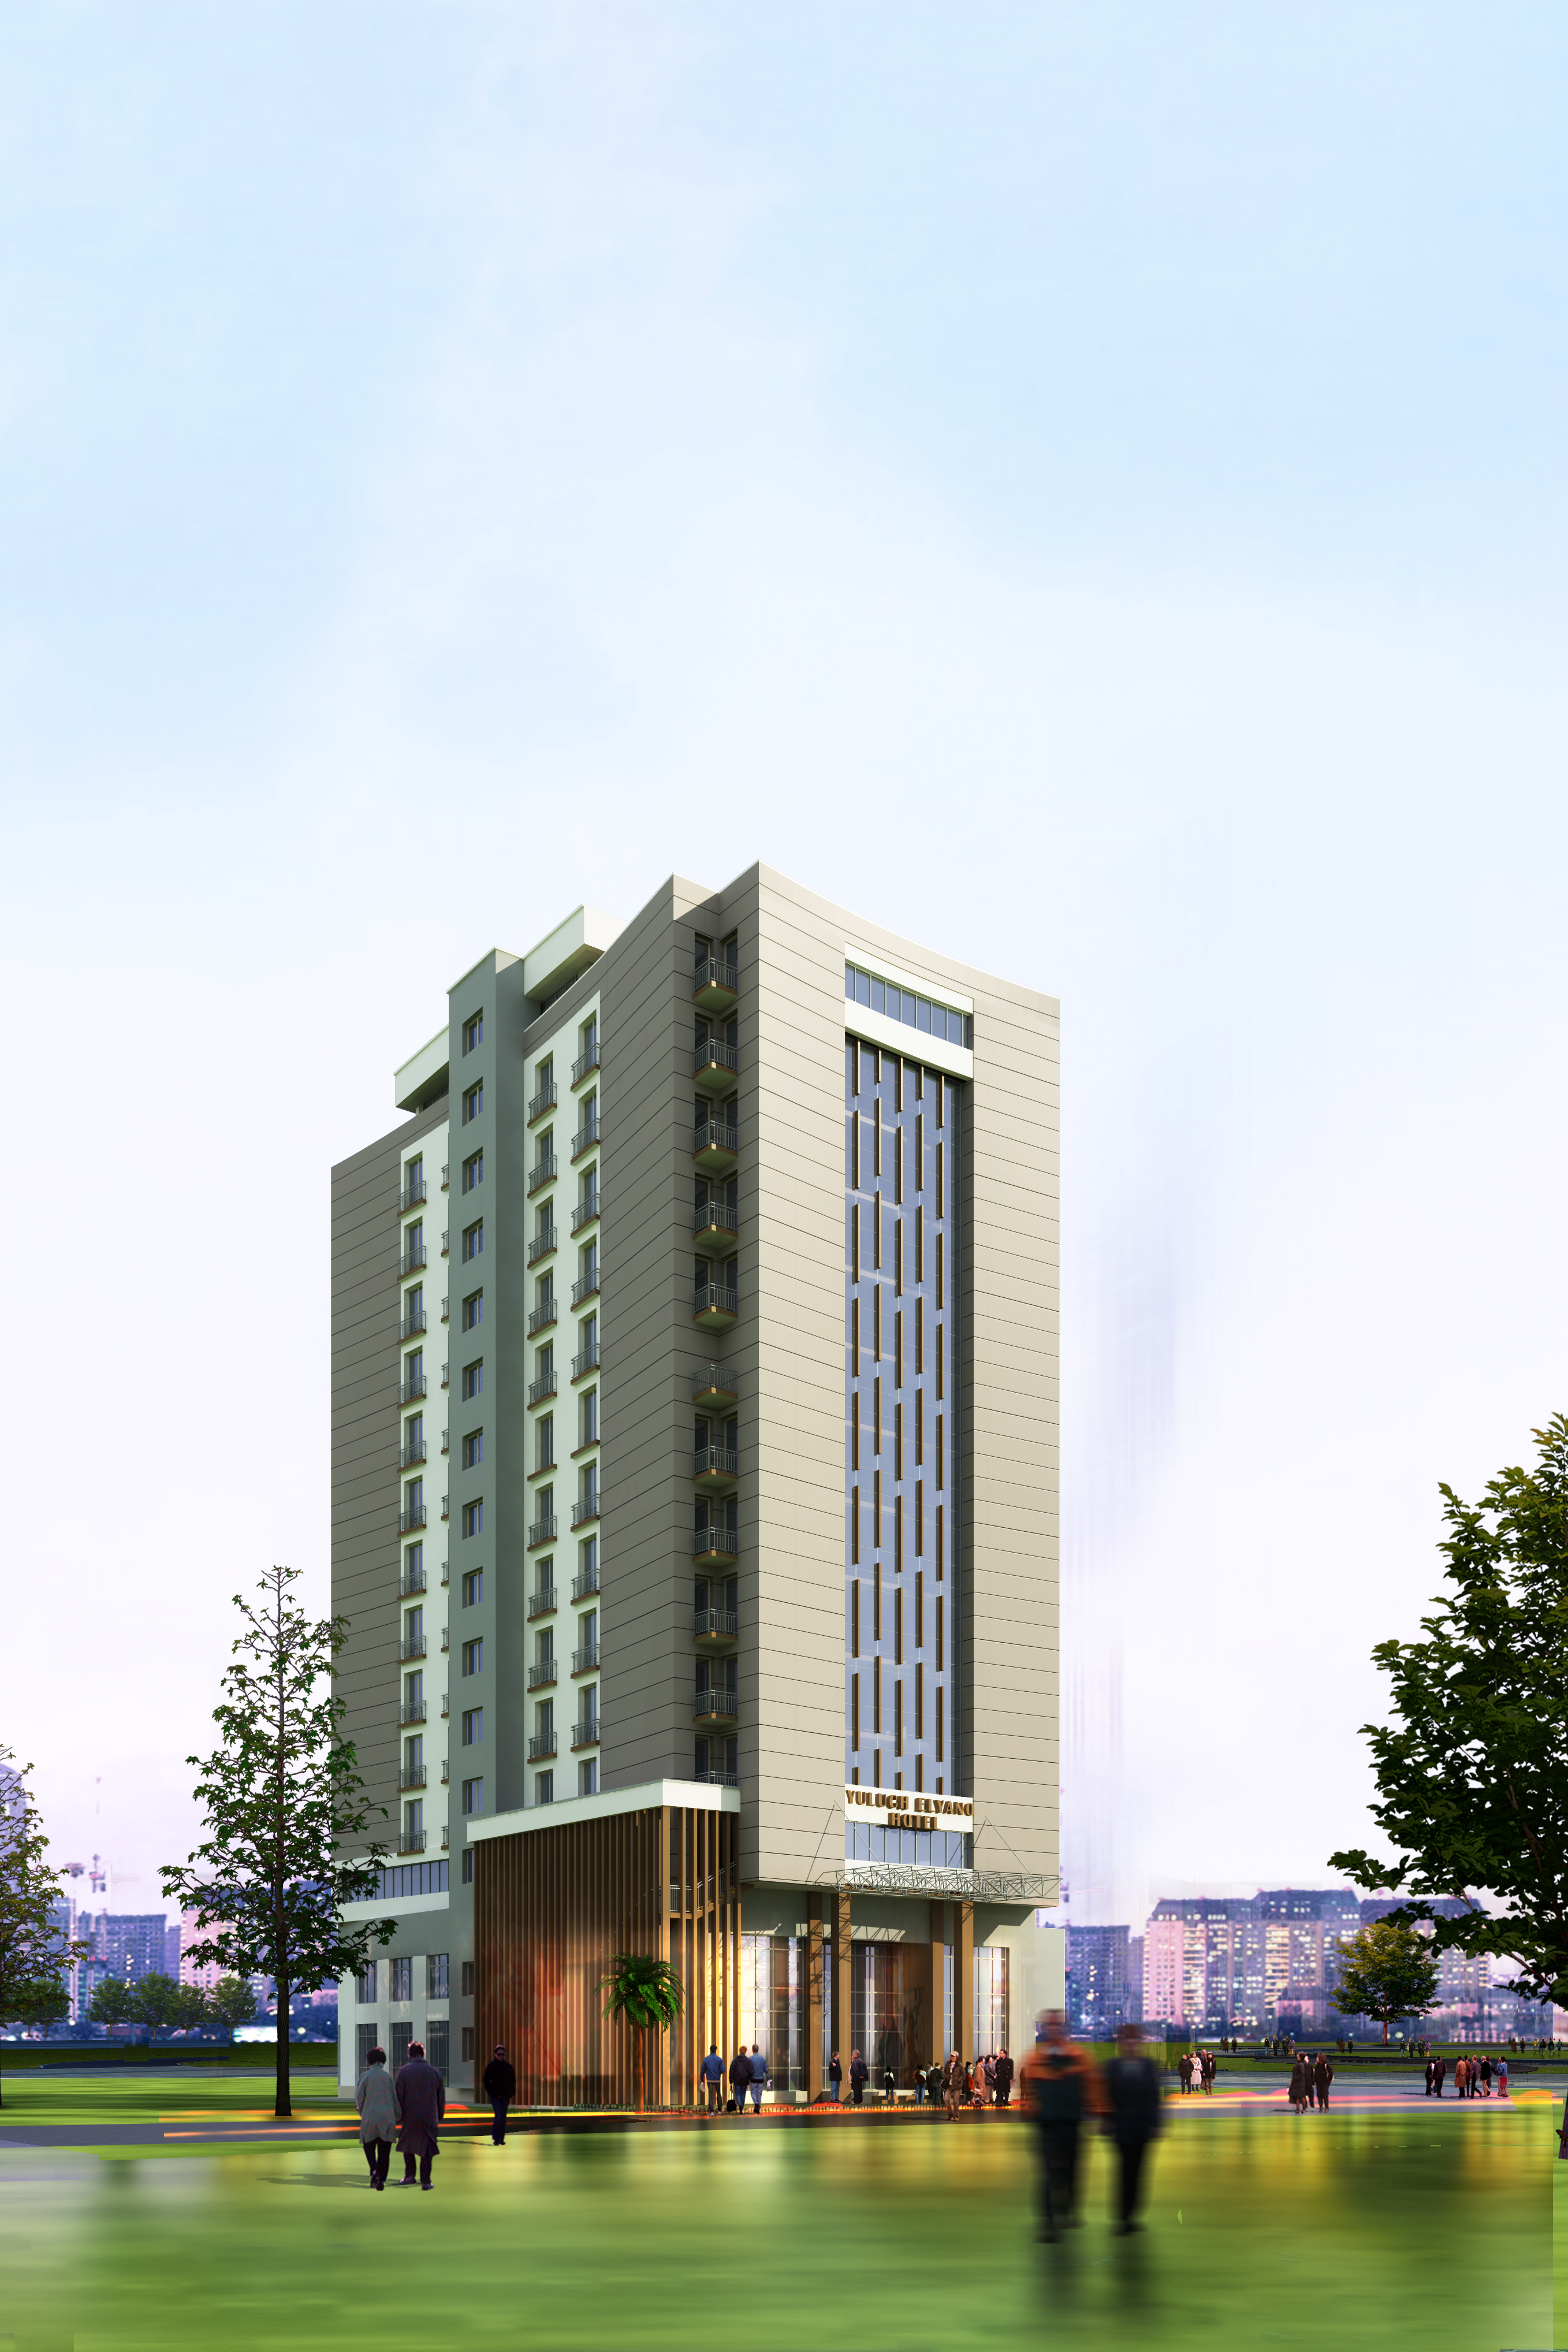 Accor set to expand Ethiopia footprint with management agreement for new Ibis Styles hotel